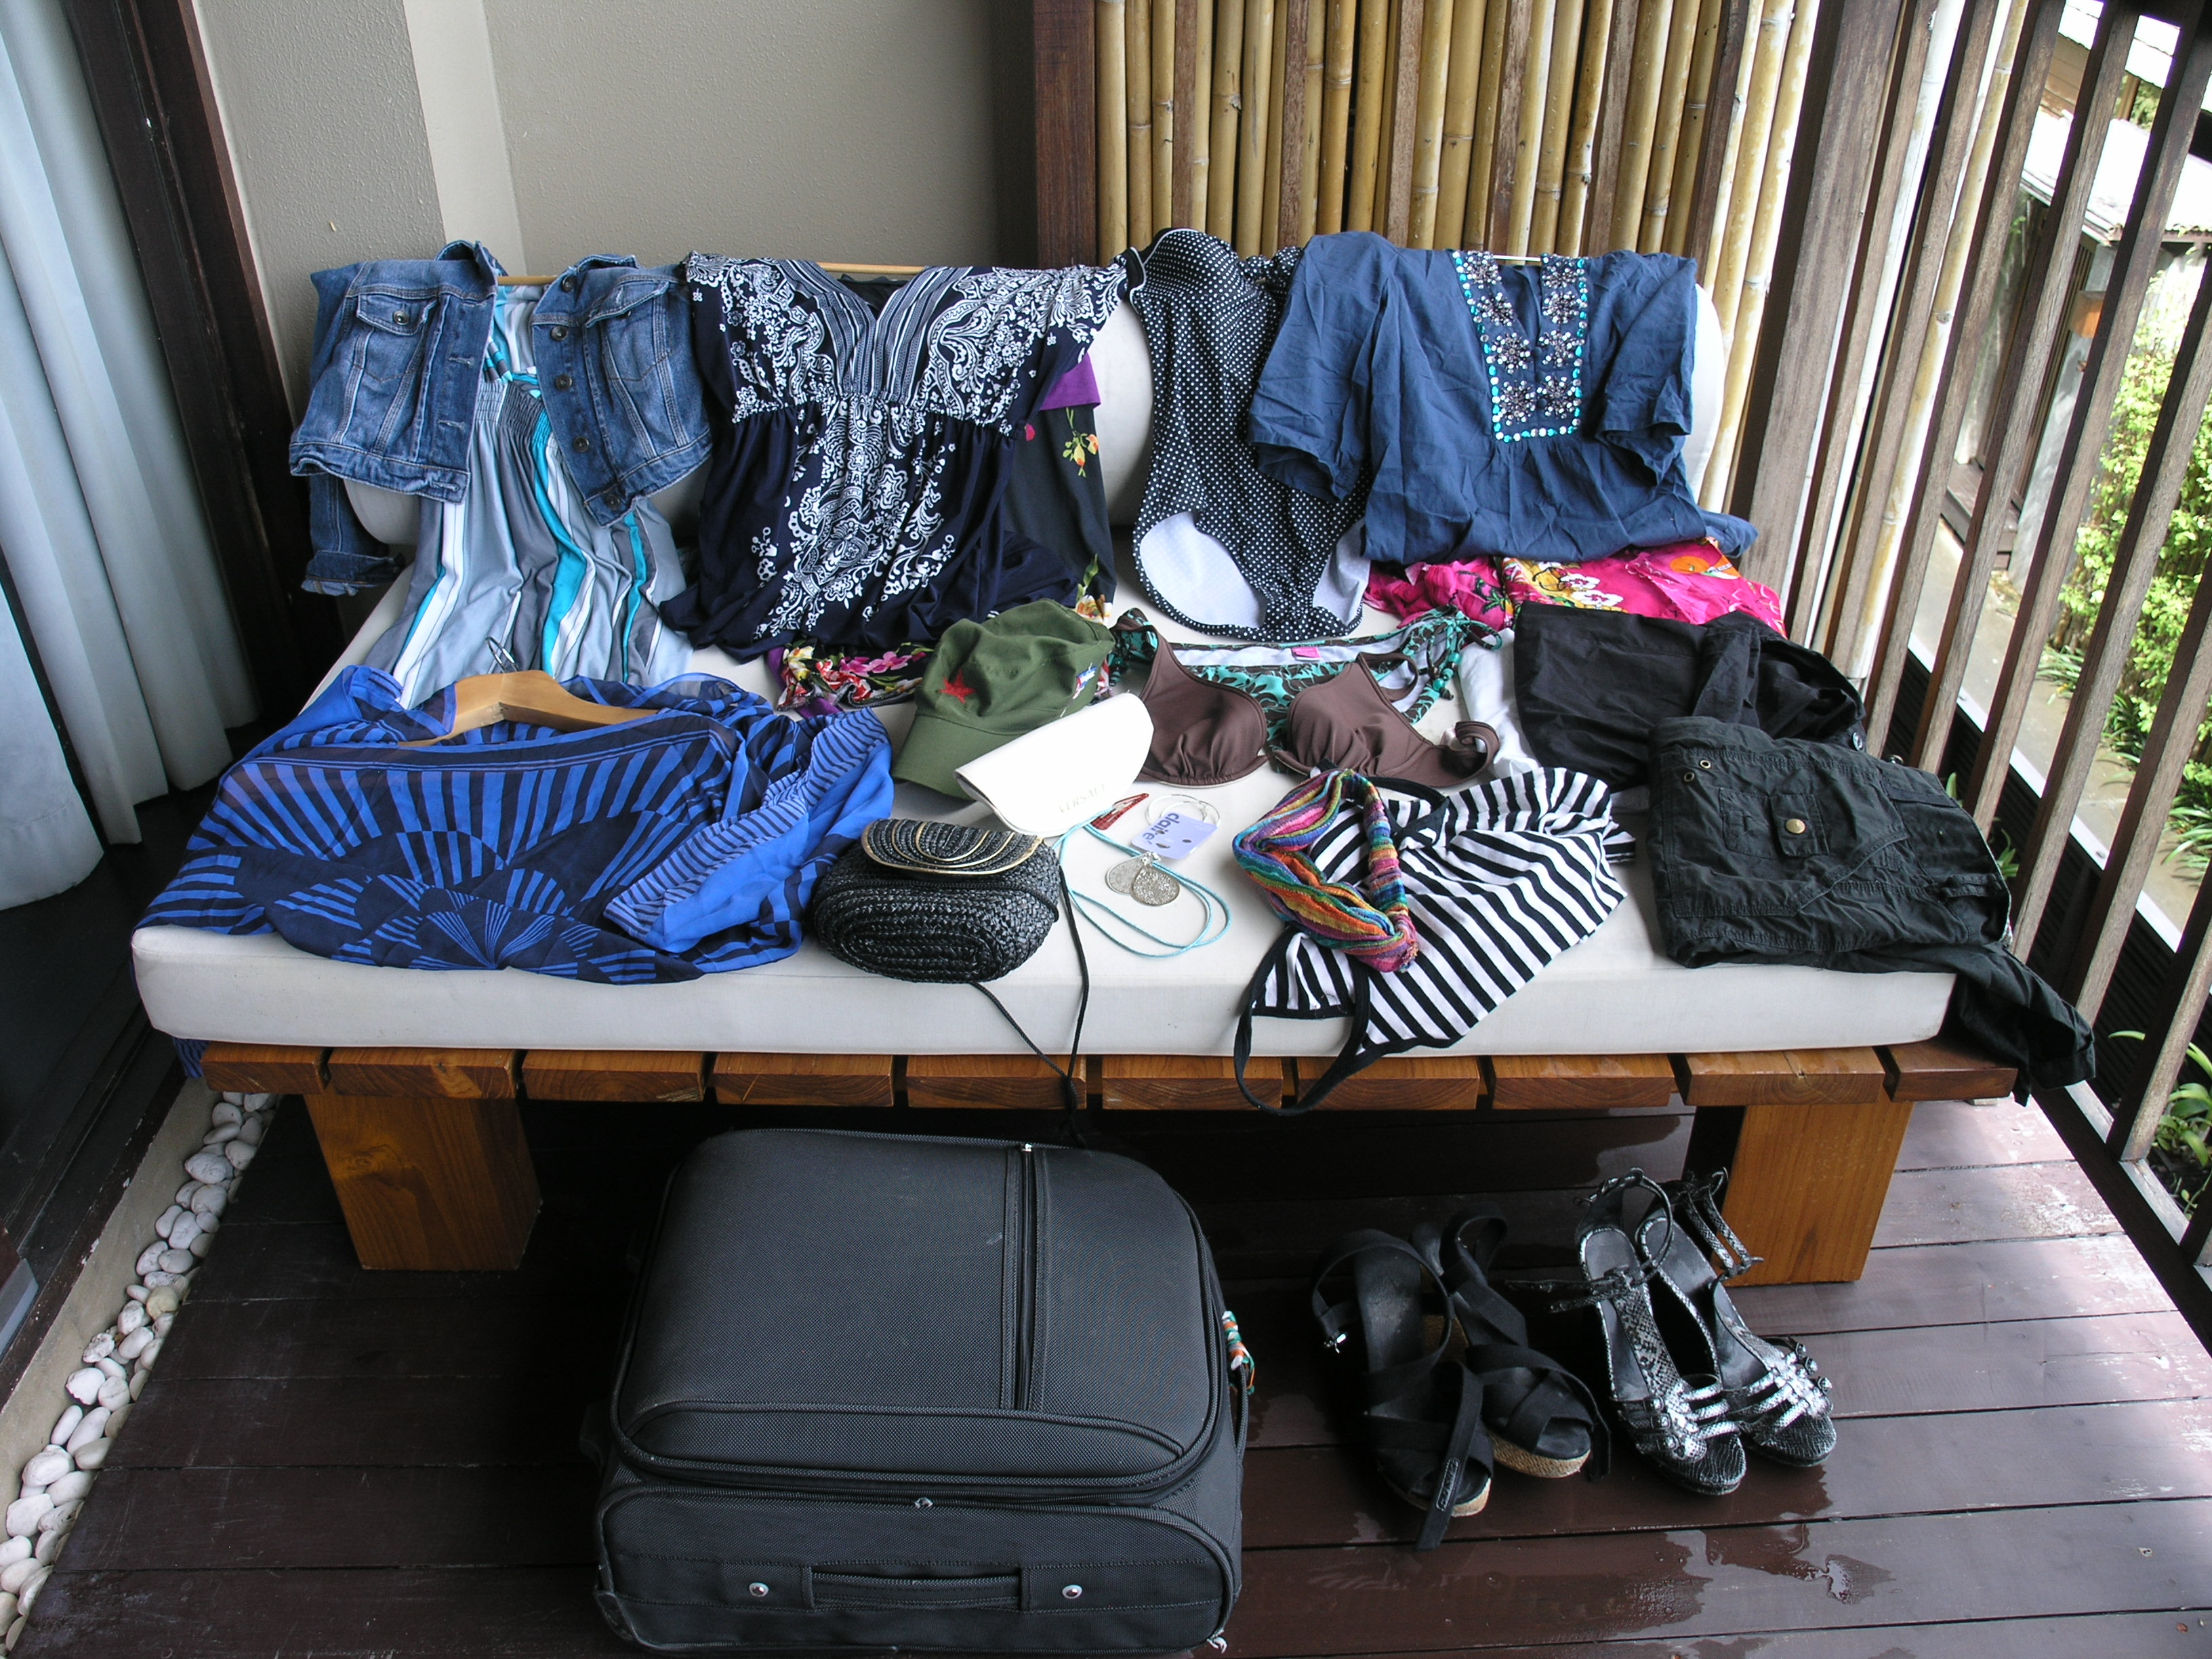 In My Holiday Suitcase: Clothes